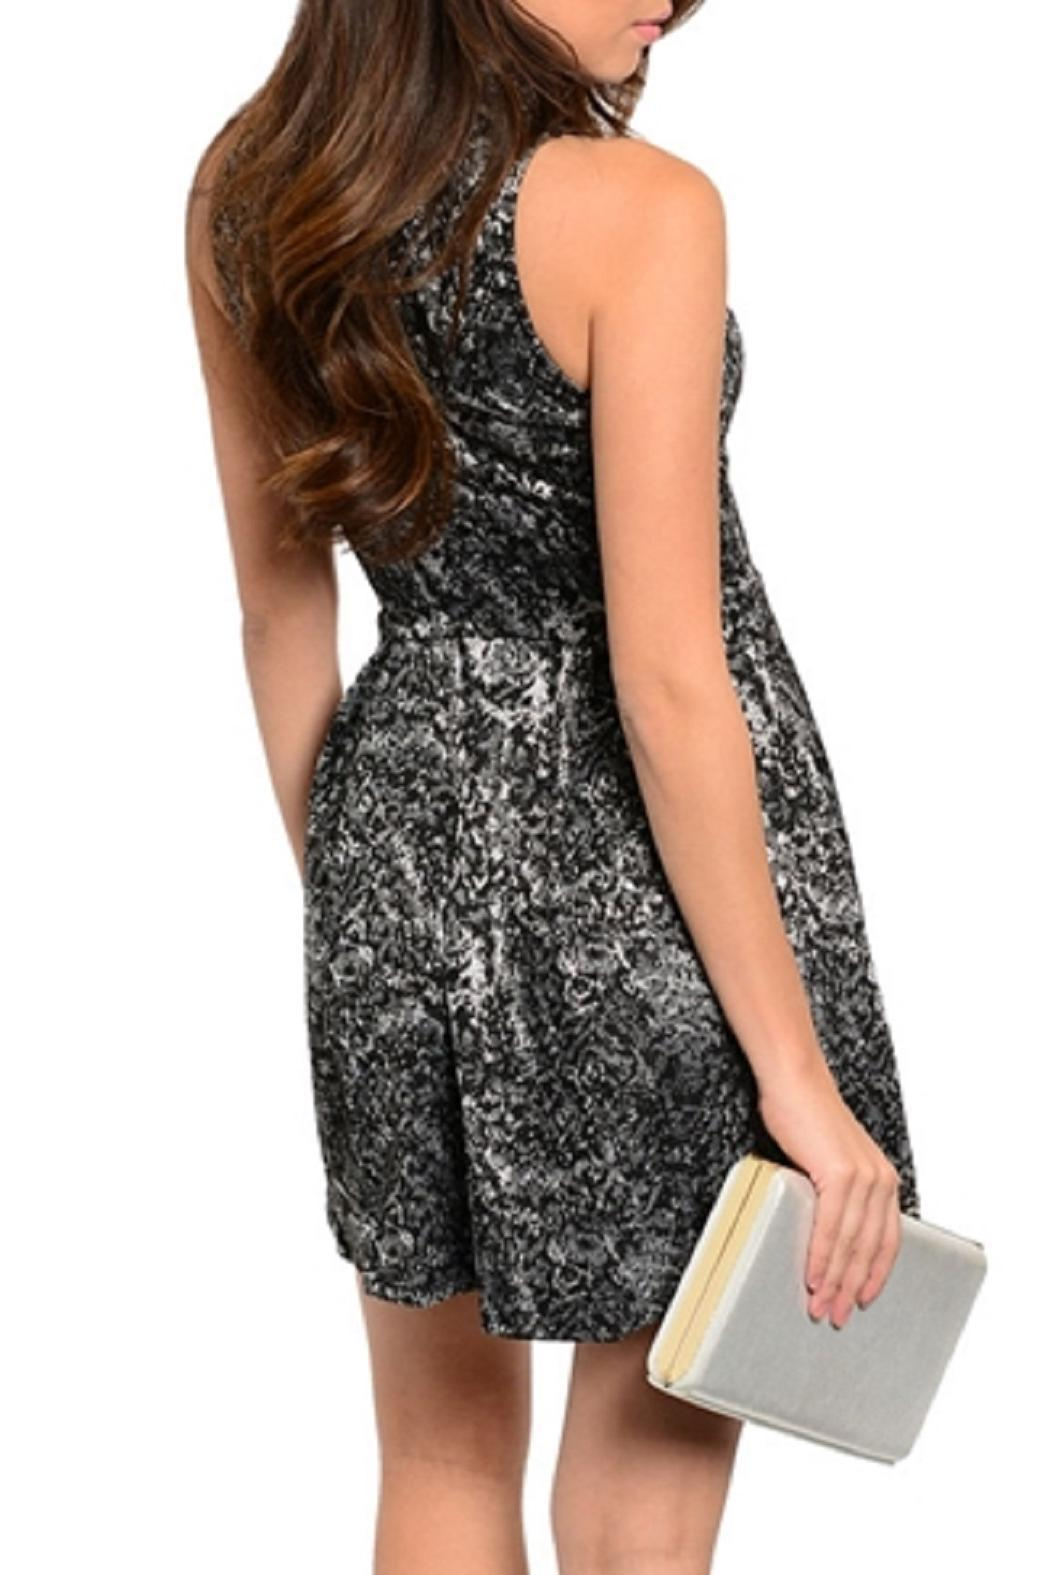 Adore Clothes & More Black Silver Dress - Front Full Image